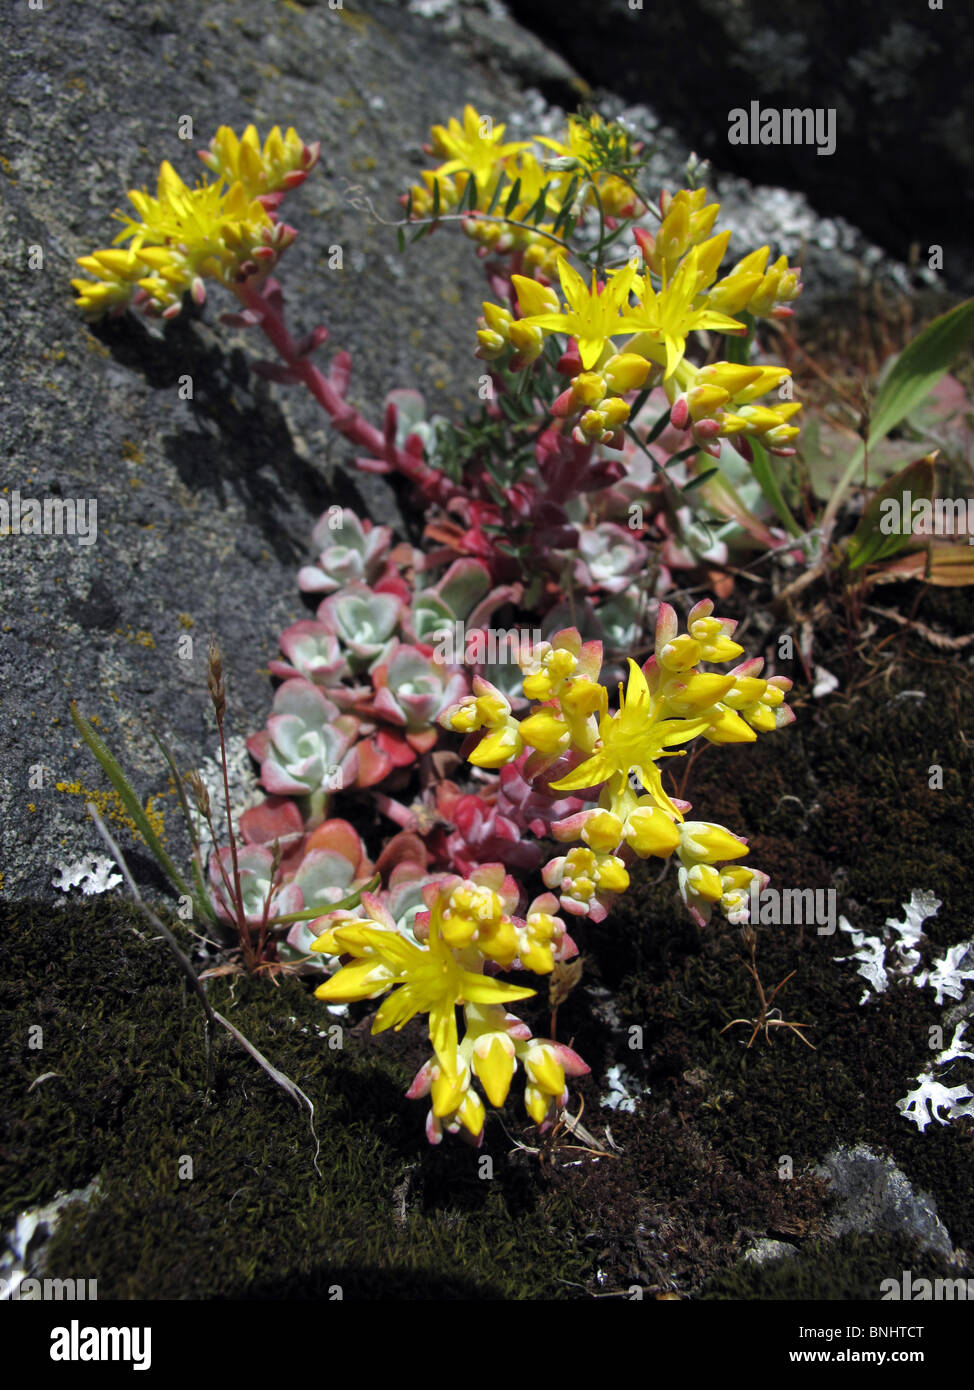 Succulent Sedum Plant In Yellow Flowers Growing On A Rock Victoria